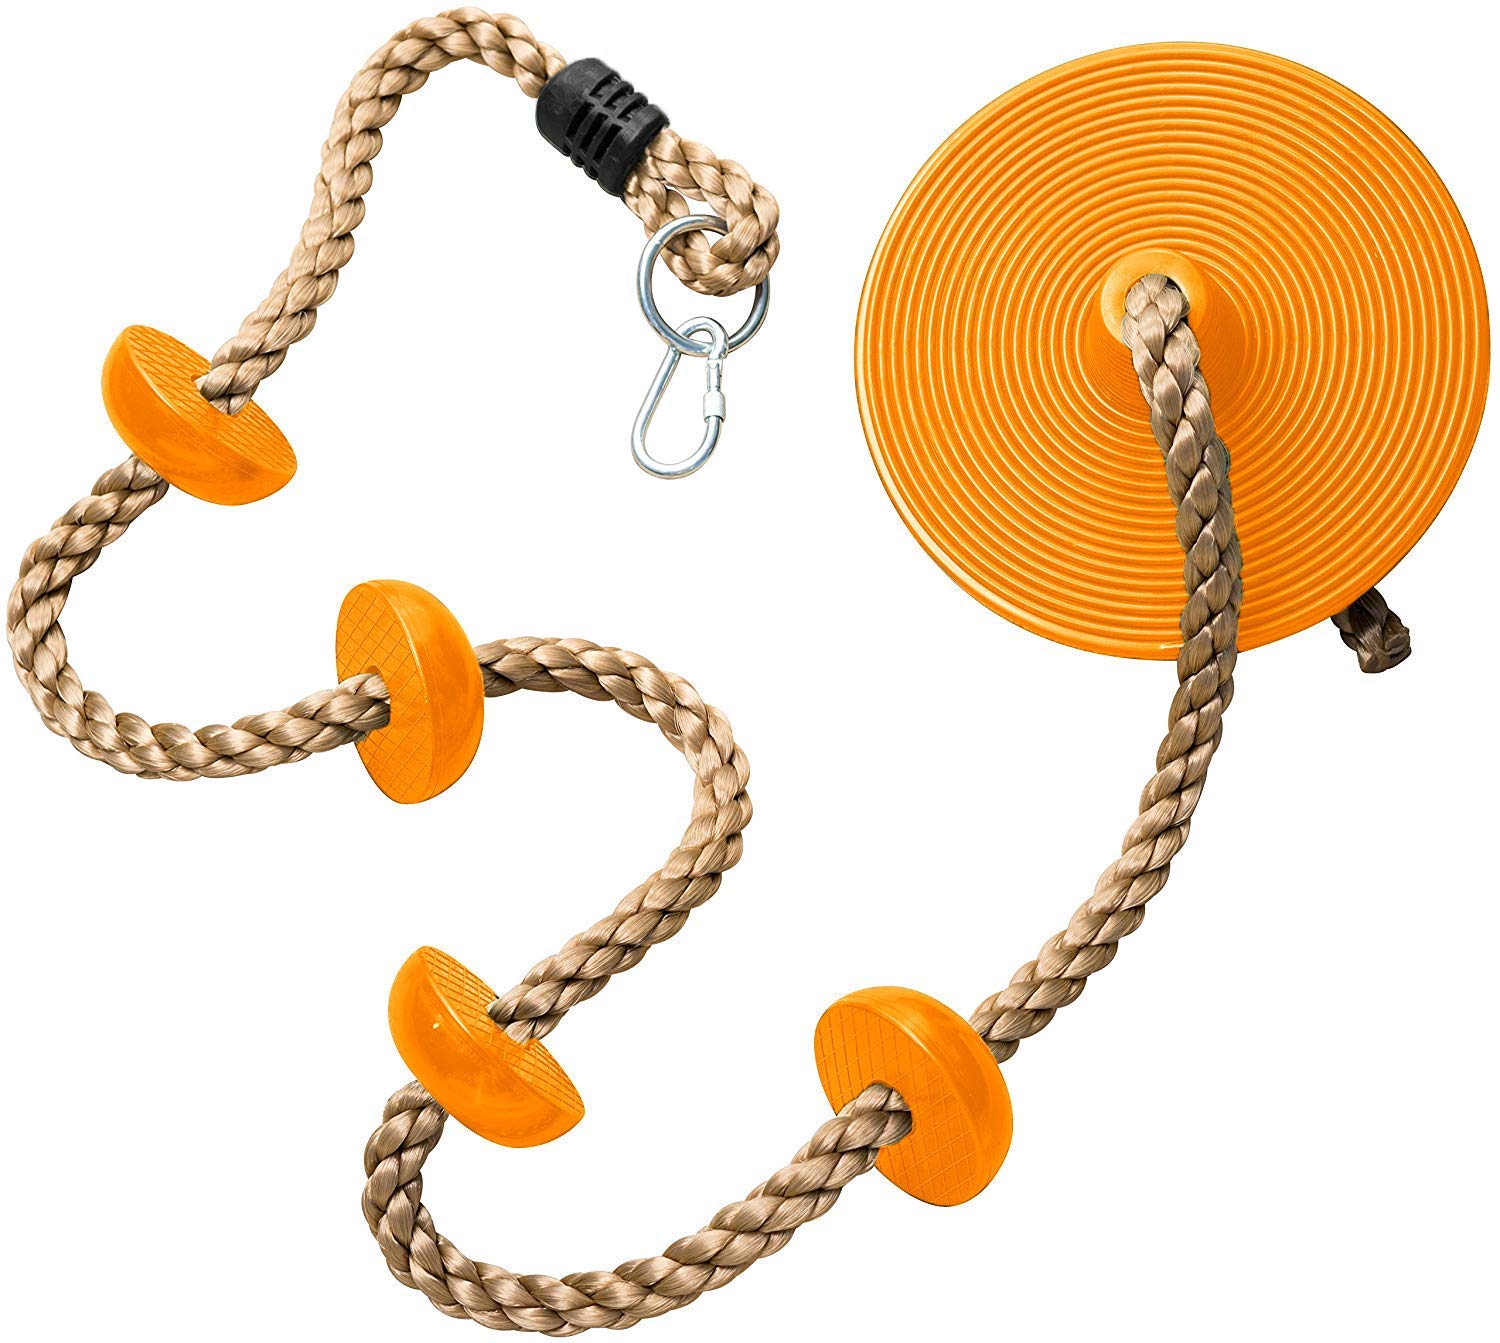 Homovater Climbing Rope with Platforms and Disc Swing Seat - Swing Set Accessories